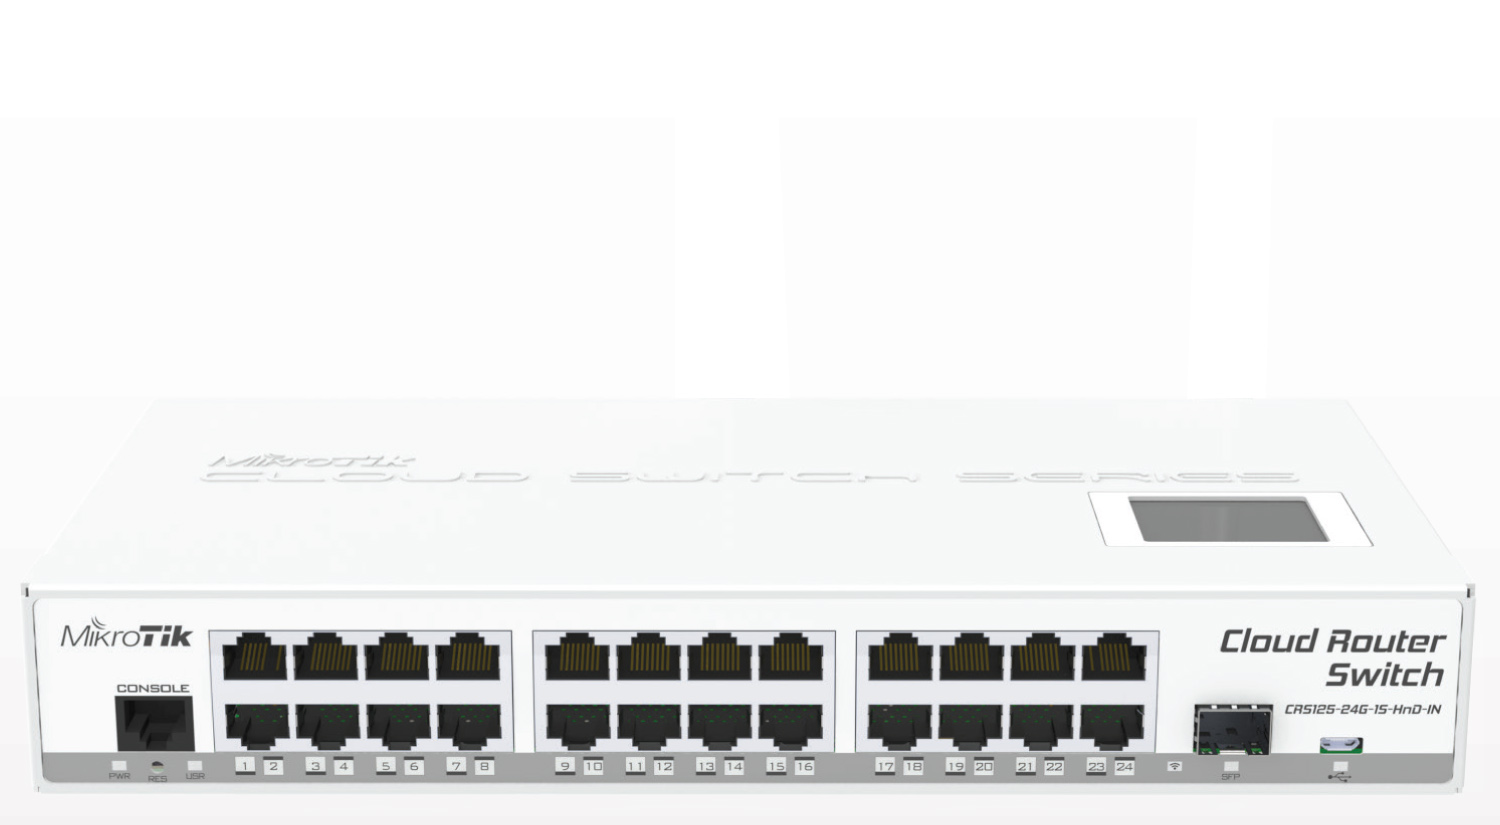 Mikrotik Cloud Router Switch Crs125 24g 1s In Complete 1